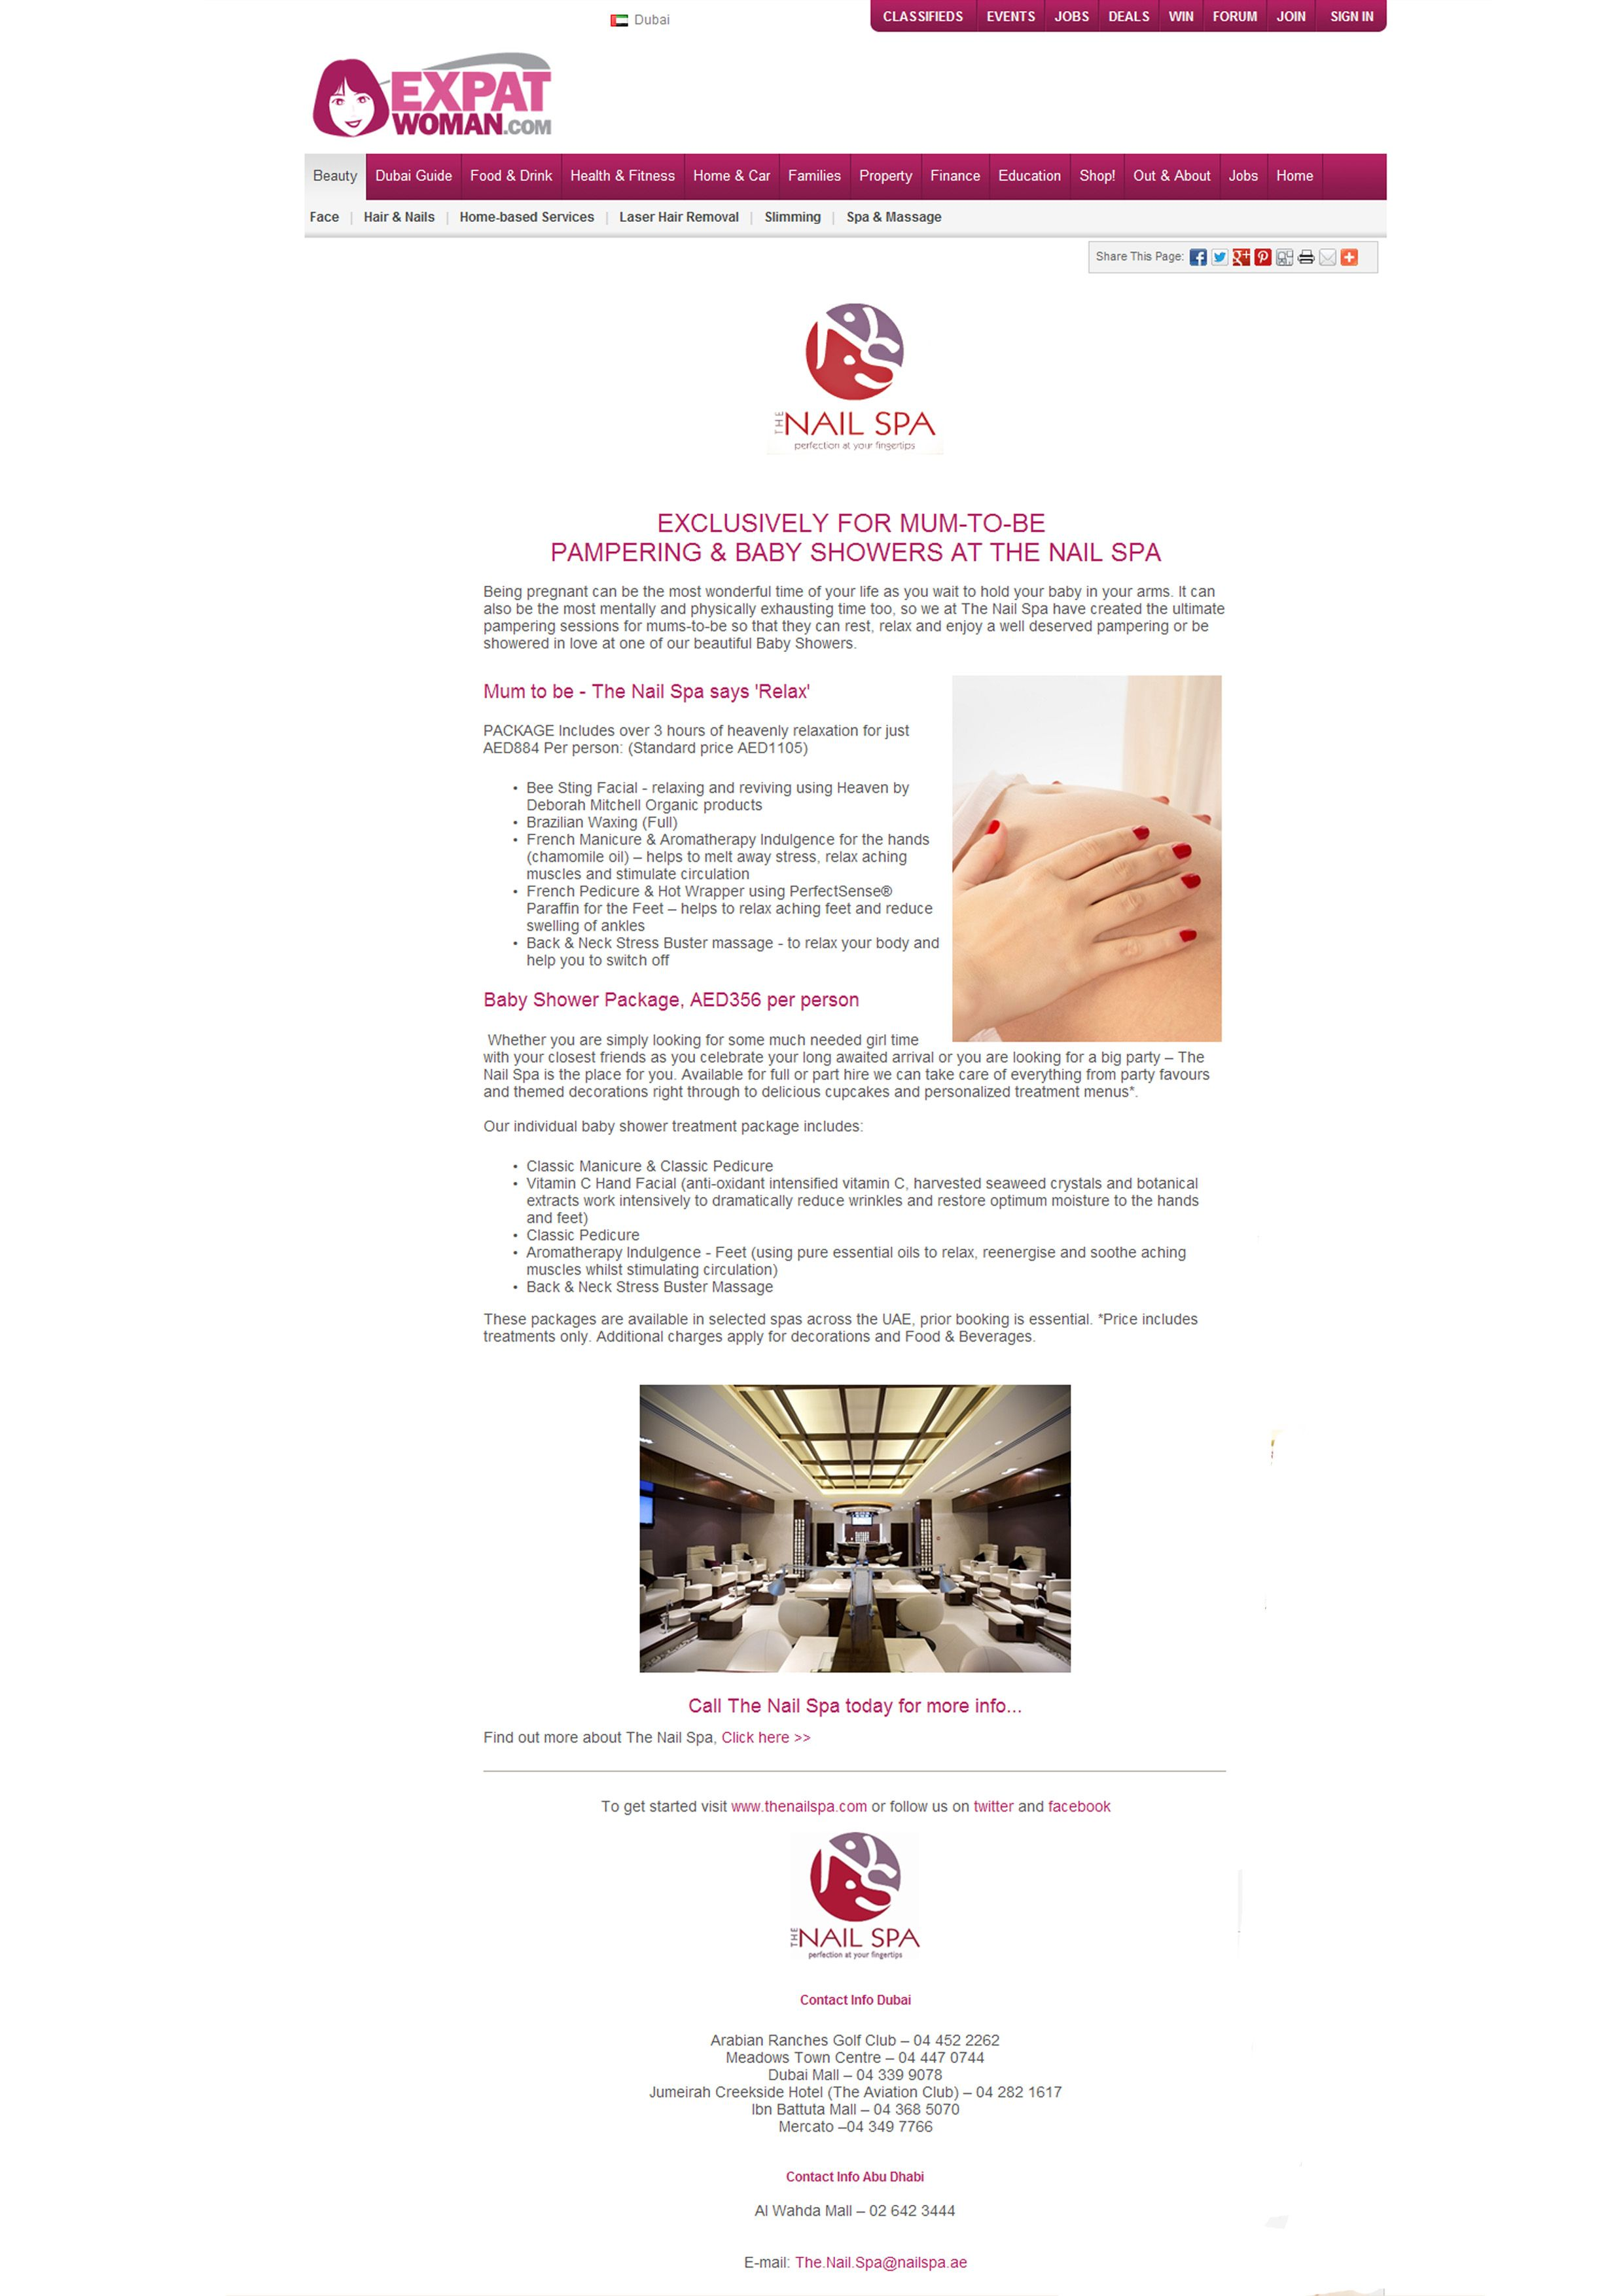 Expat Woman - Apr 2013 www.thenailspa.com | The Nail Spa - In the ...